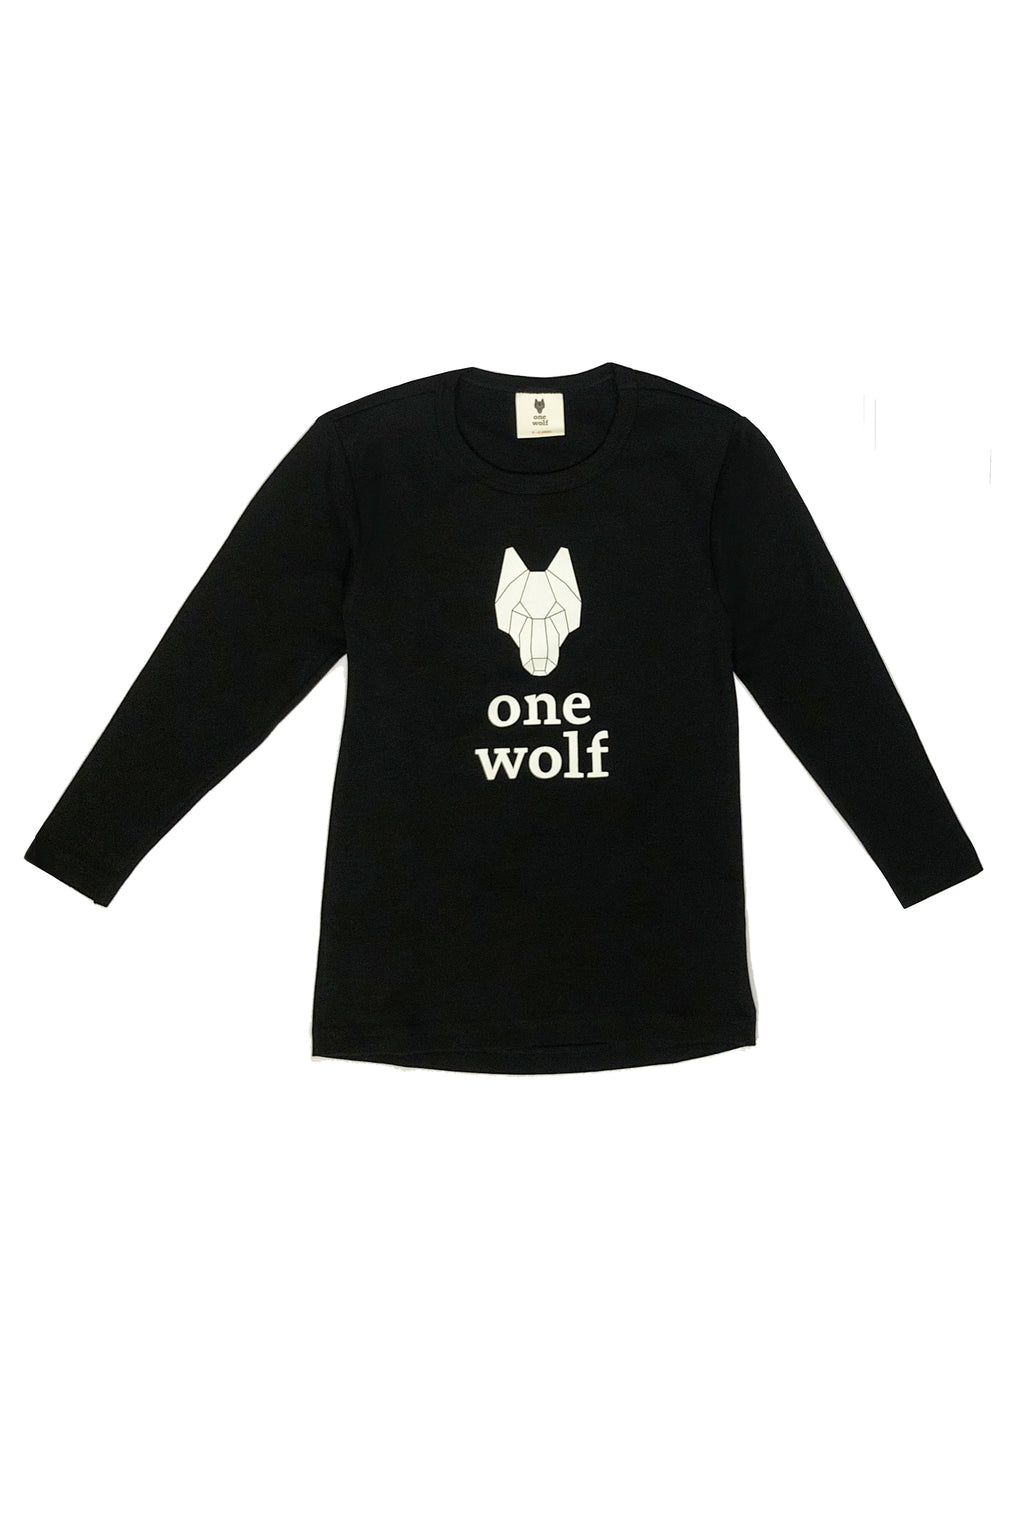 KIDS OW LOGO long sleeve T-shirt black/white logo - One Wolf